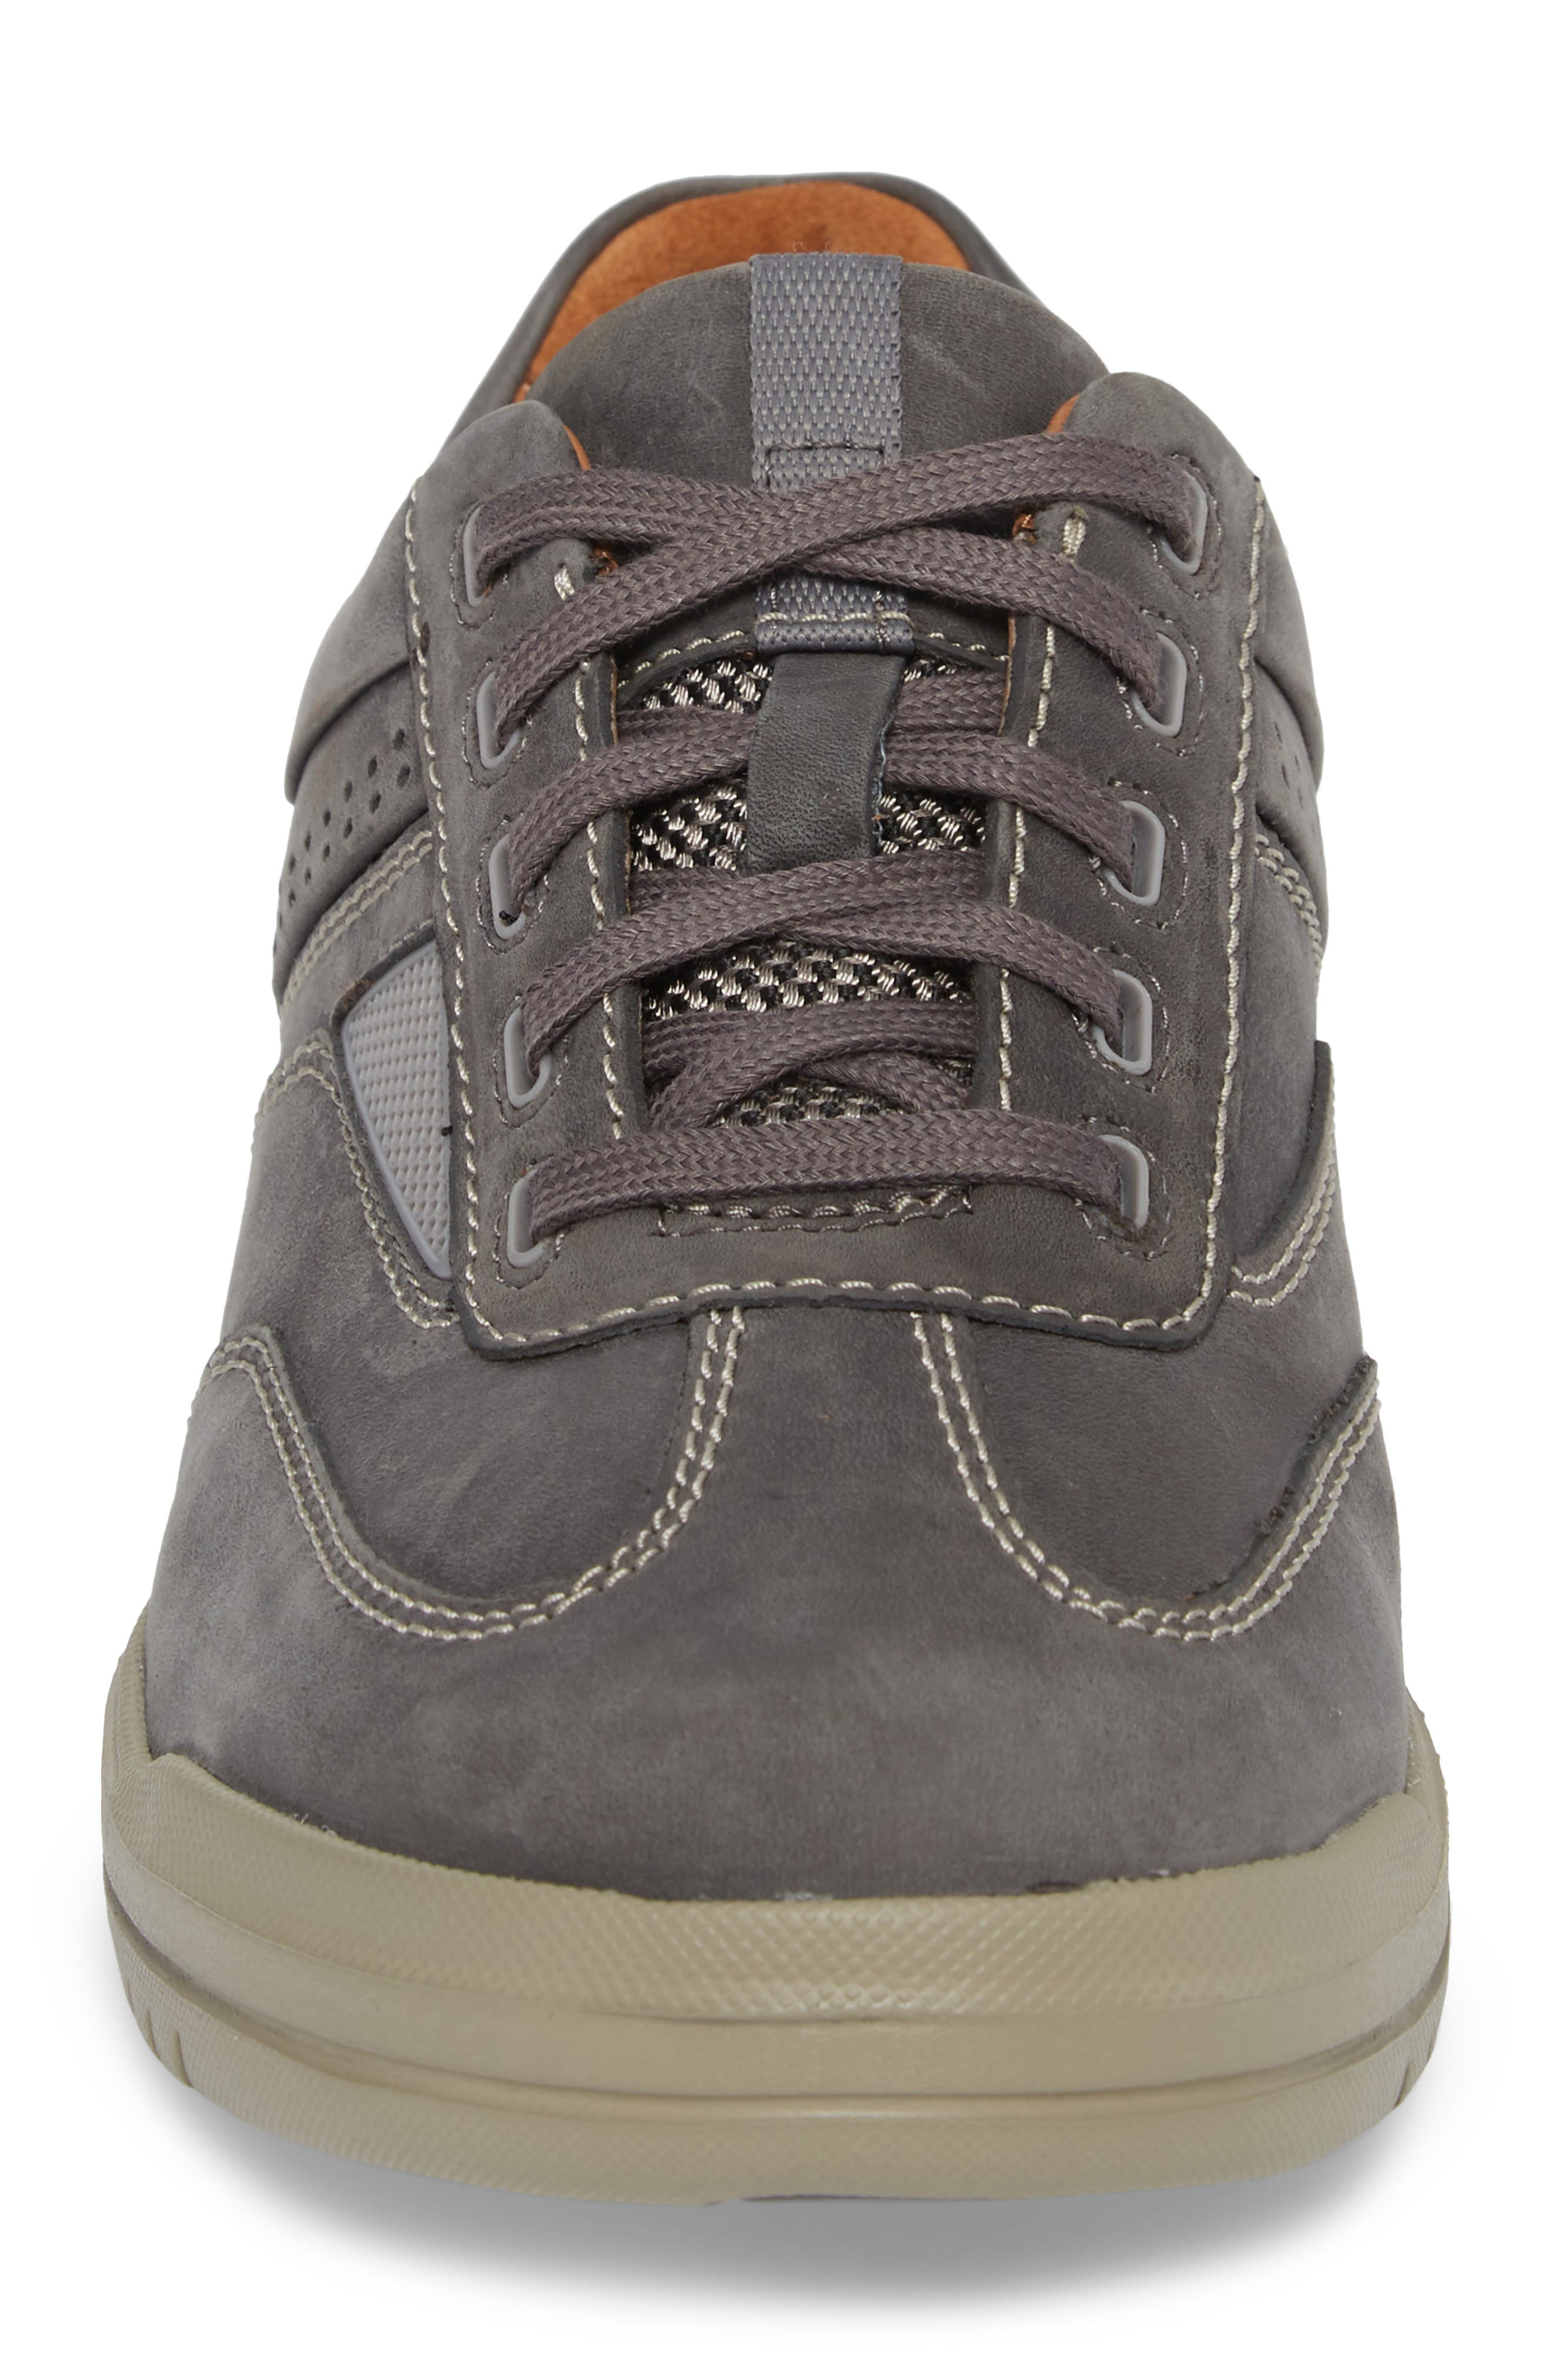 Originals Unrhombus Low Top Sneaker,                             Alternate thumbnail 4, color,                             021